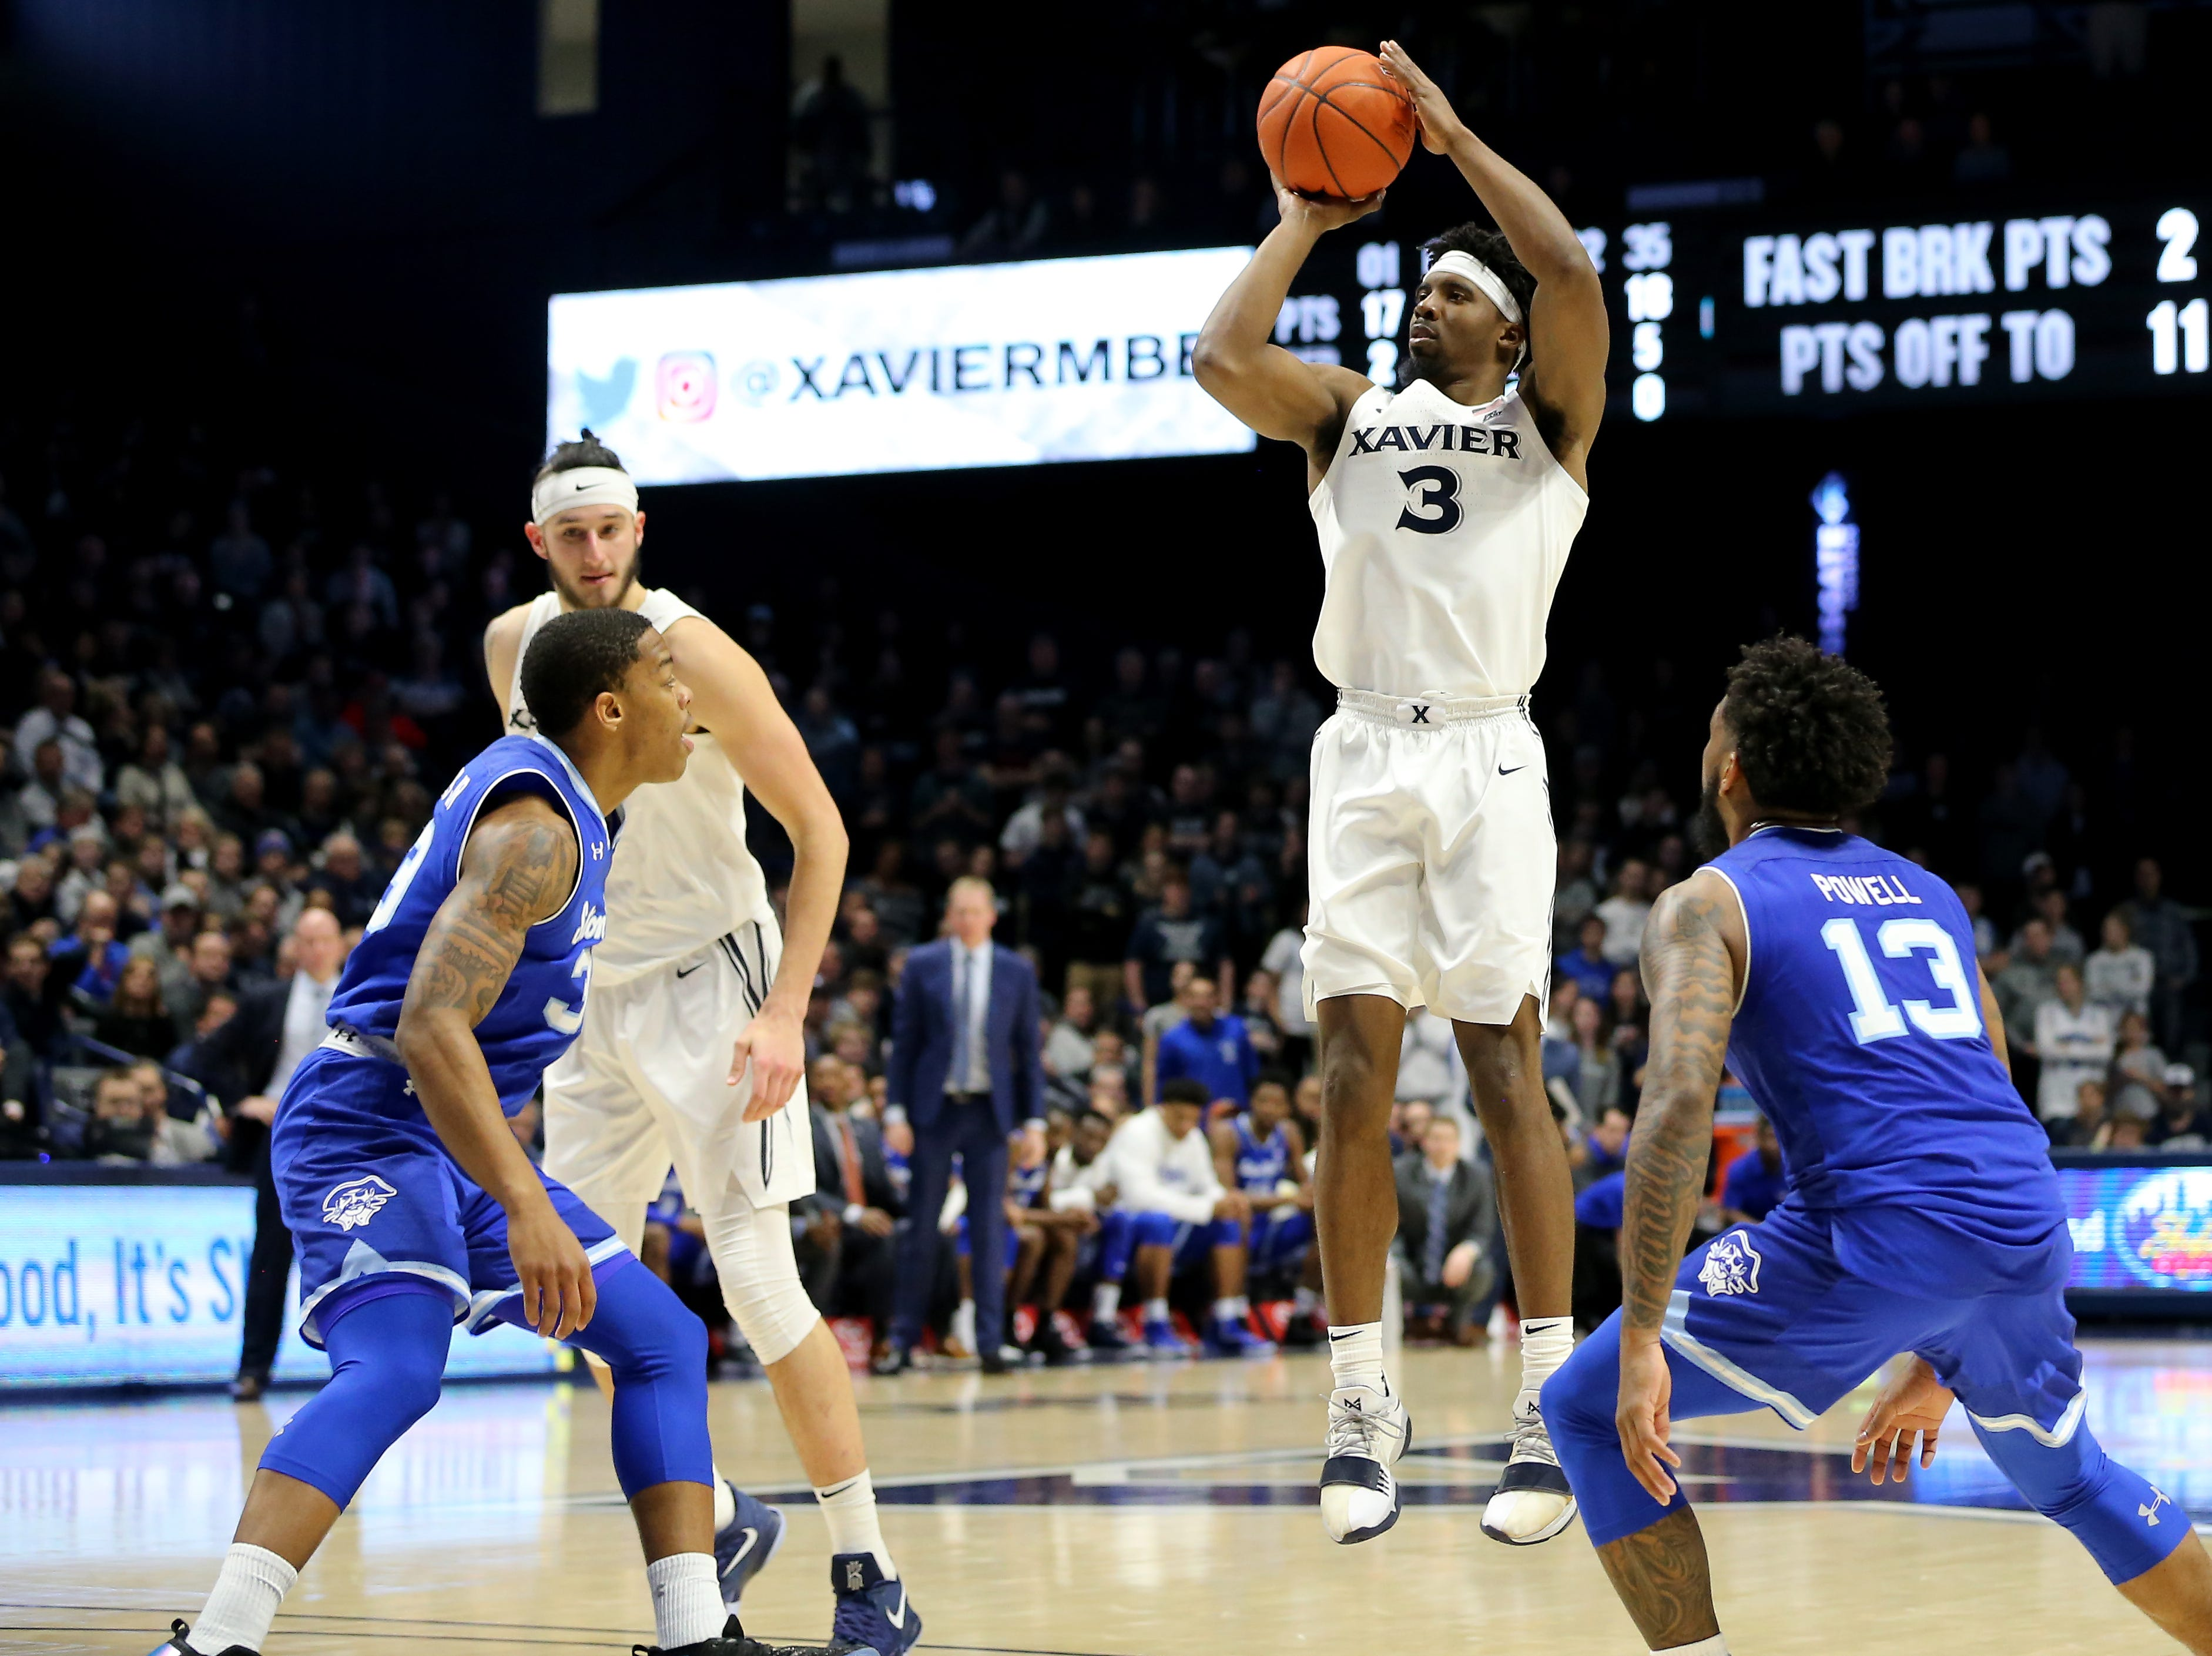 Xavier Musketeers guard Quentin Goodin (3) rises for a shot in the second half of an NCAA college basketball game against the Seton Hall Pirates, Wednesday, Jan. 2, 2019, at the Cintas Center in Cincinnati. Seton Hall won 80-70.